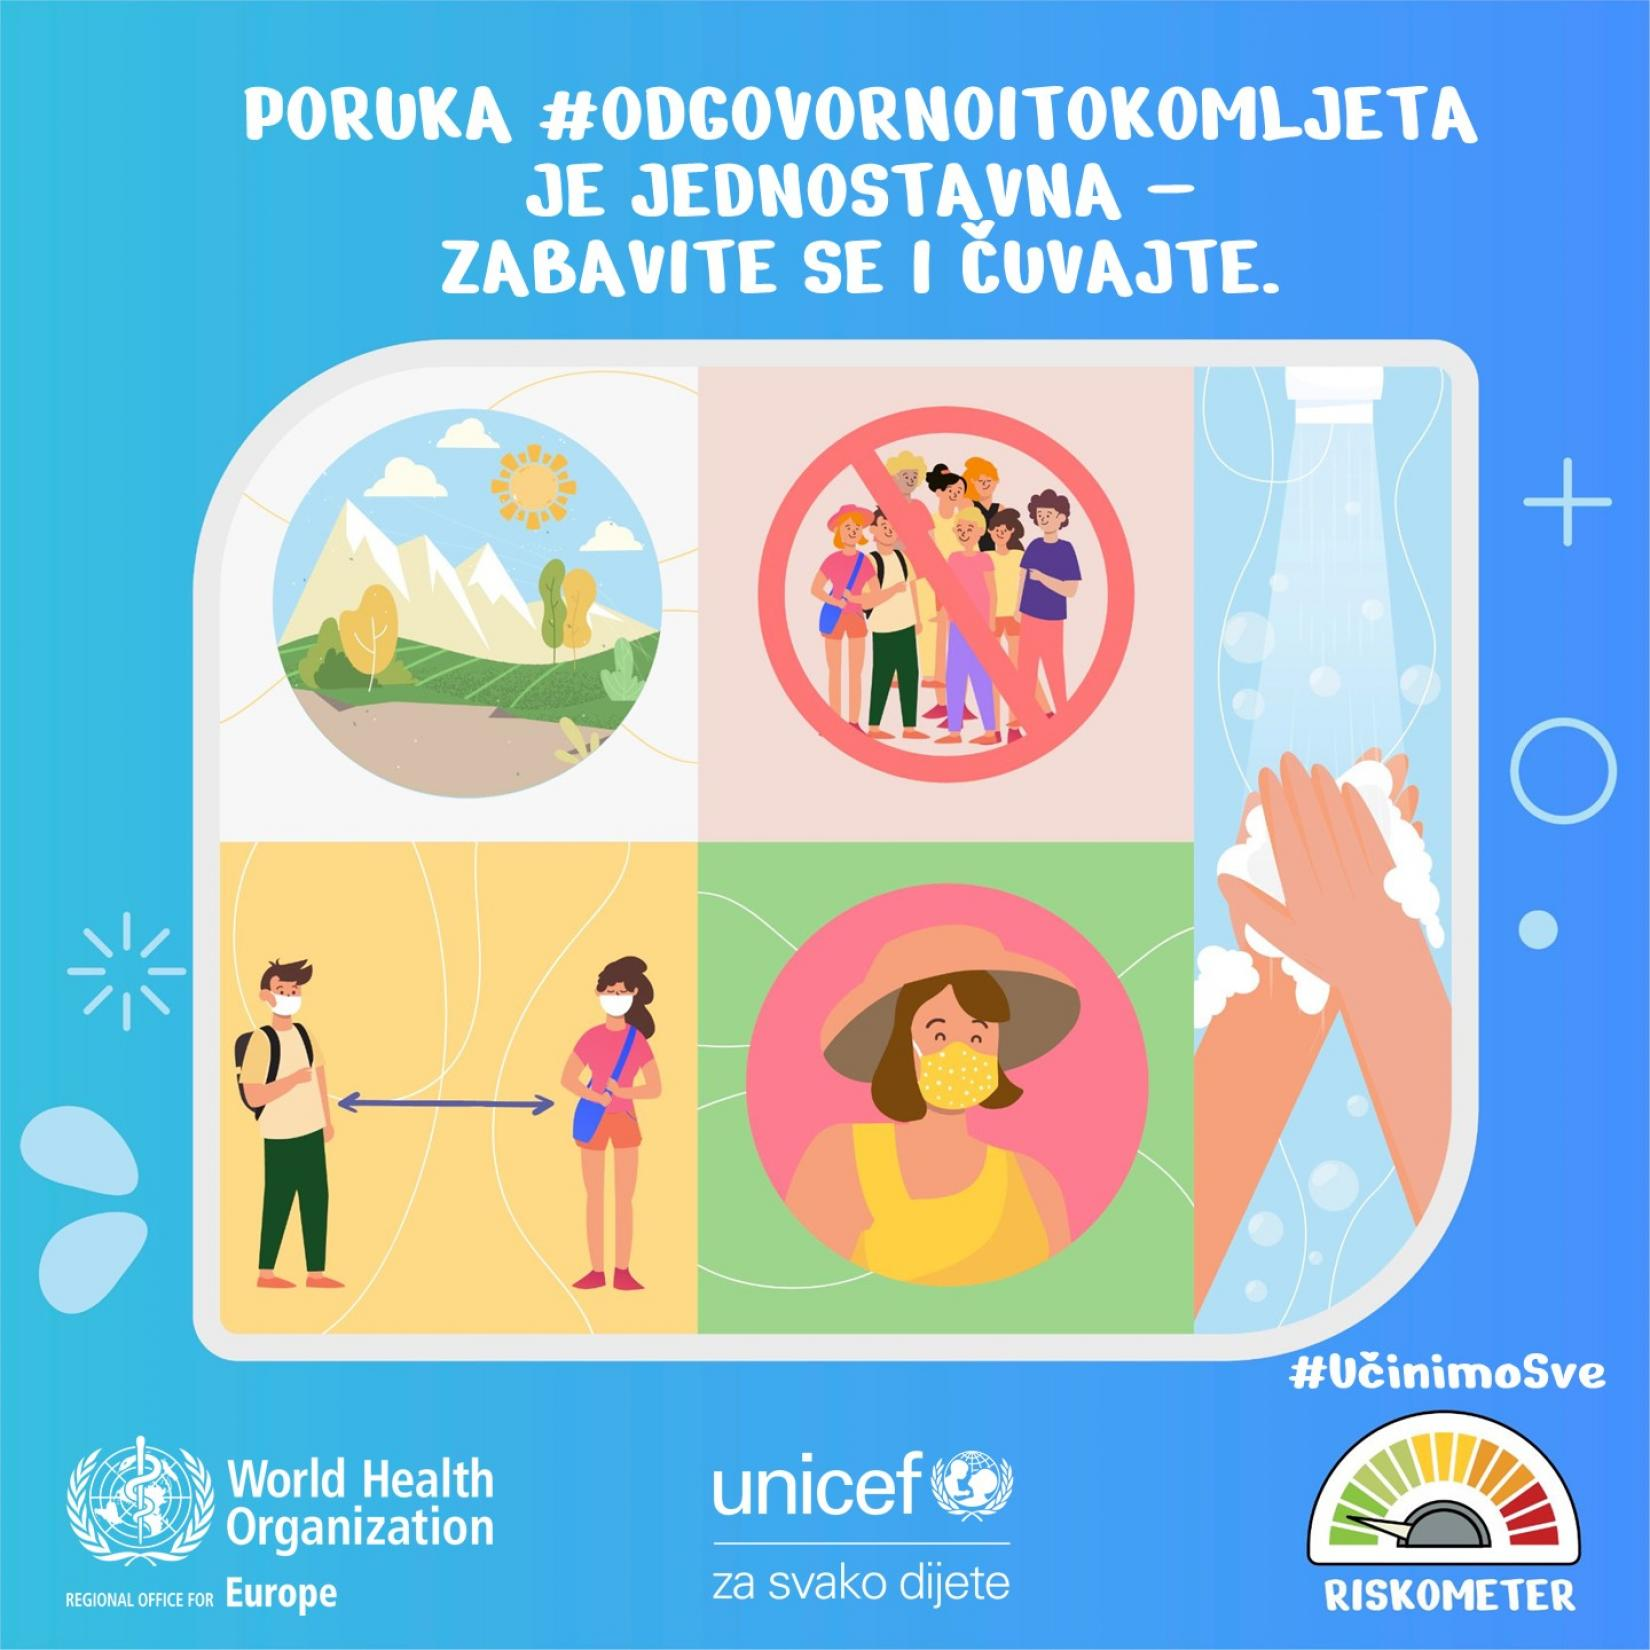 BiH: UNICEF supports the #SummerSense campaign